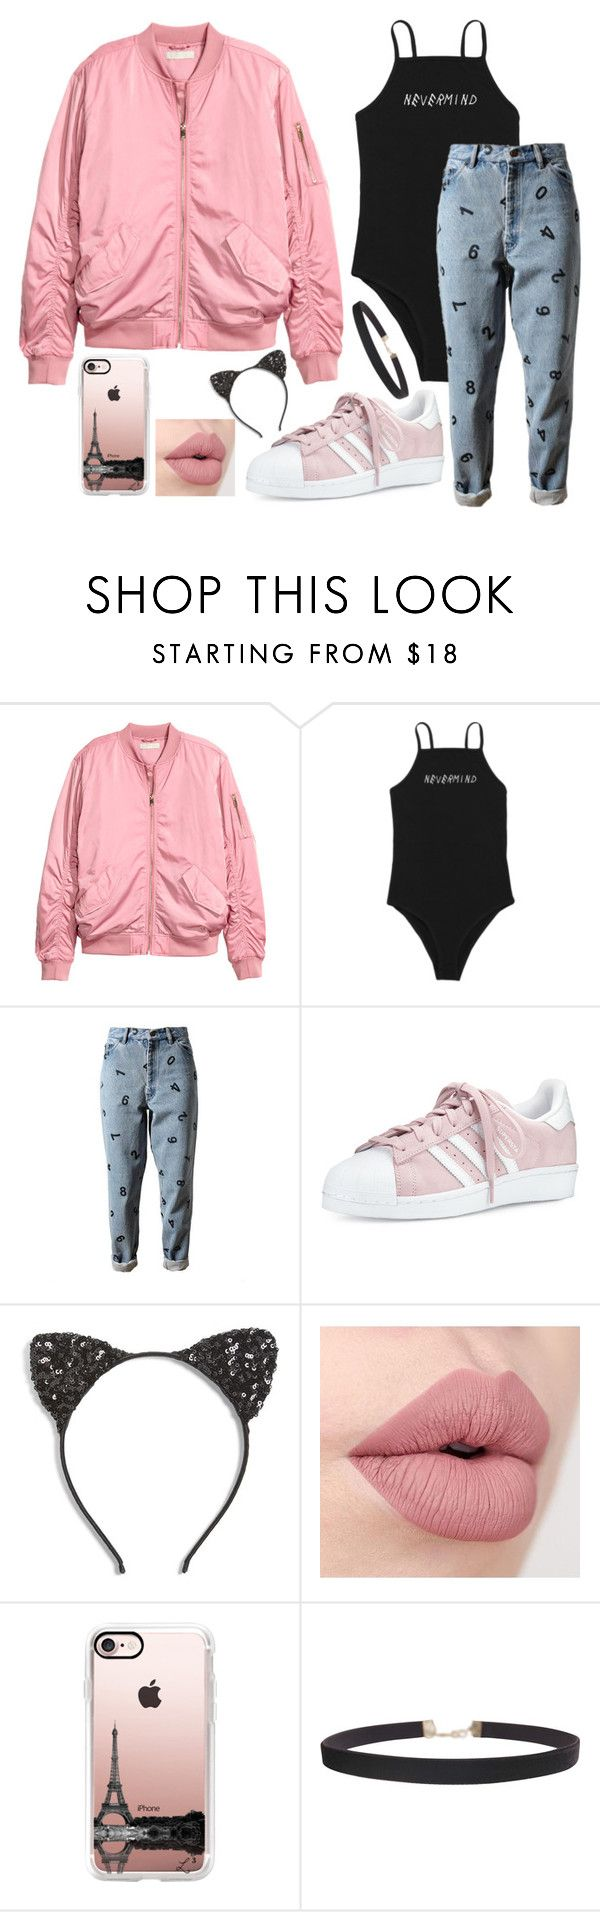 """""""a"""" by gurlfashionstar ❤ liked on Polyvore featuring H&M, Ashish, adidas, Cara, Casetify and Humble Chic"""